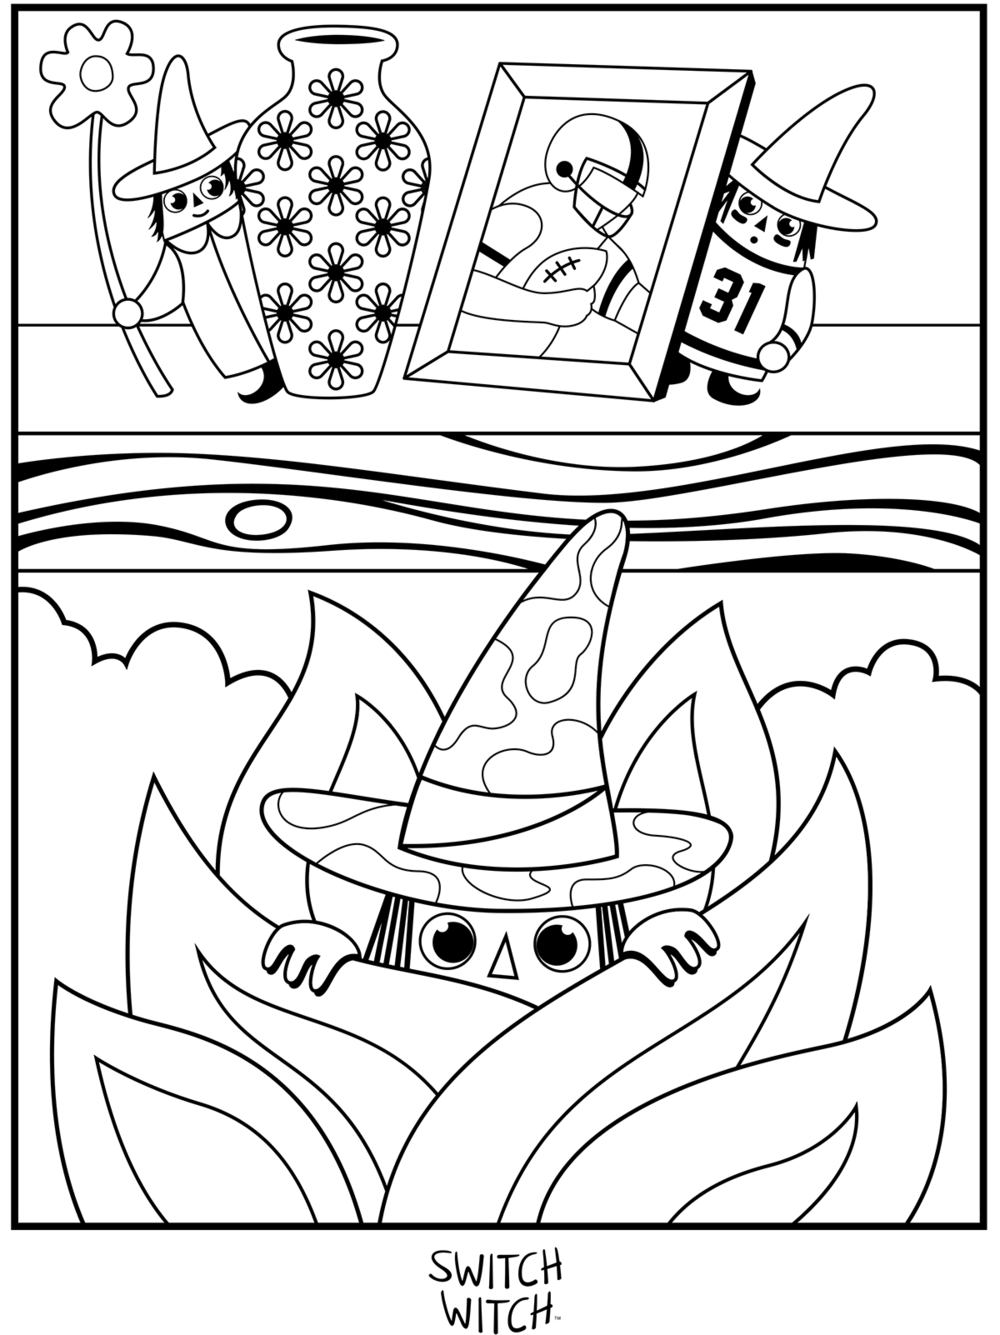 Coloring Pages — the original switch witch™